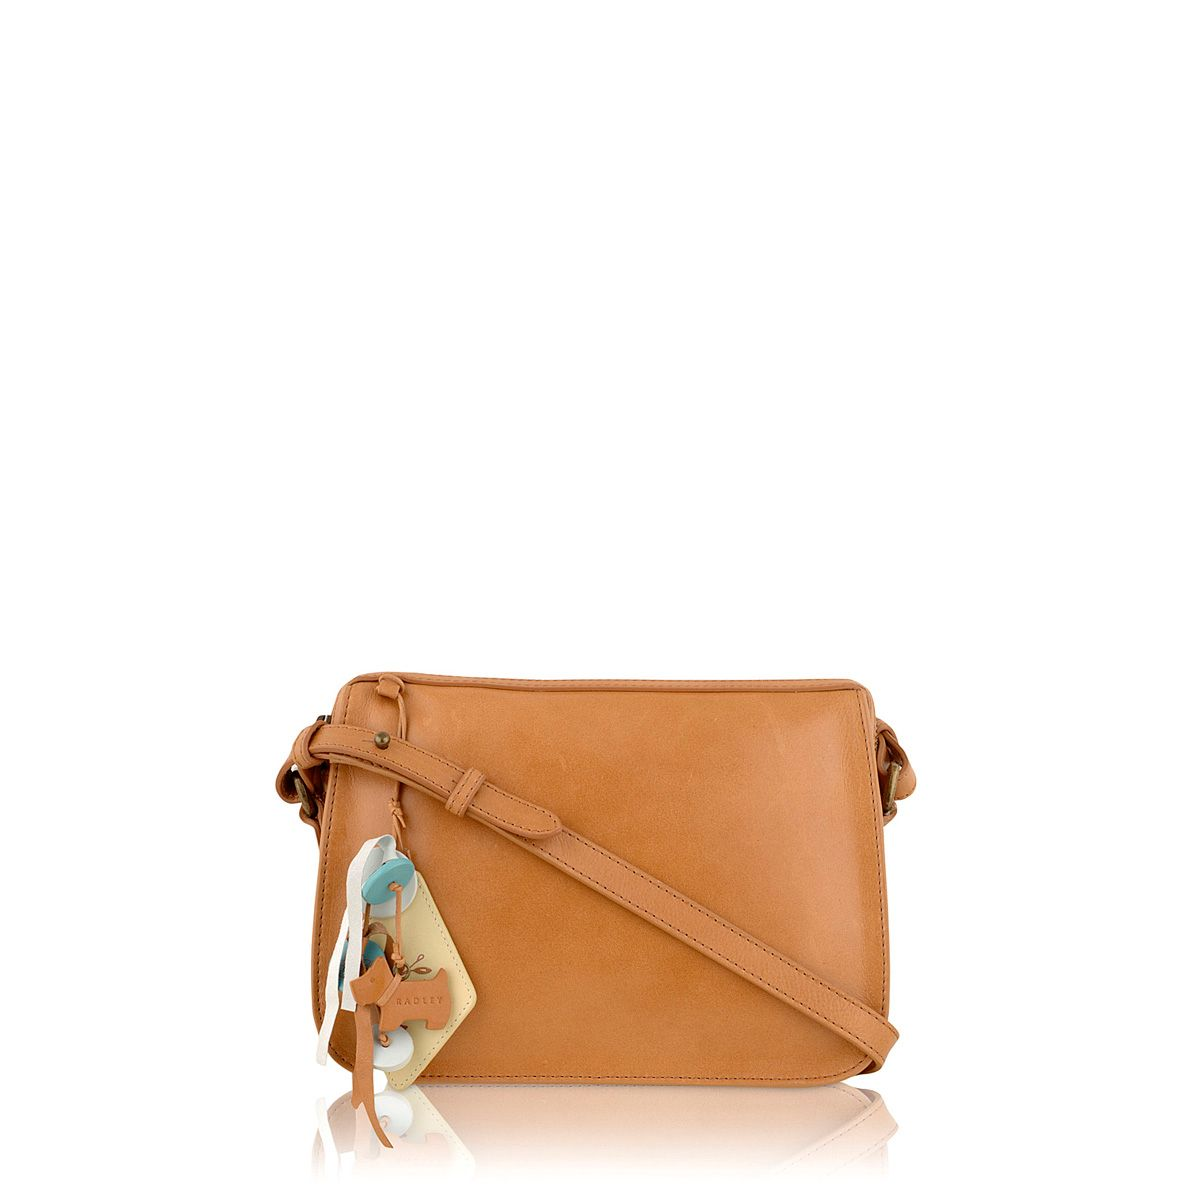 Tan small cross body